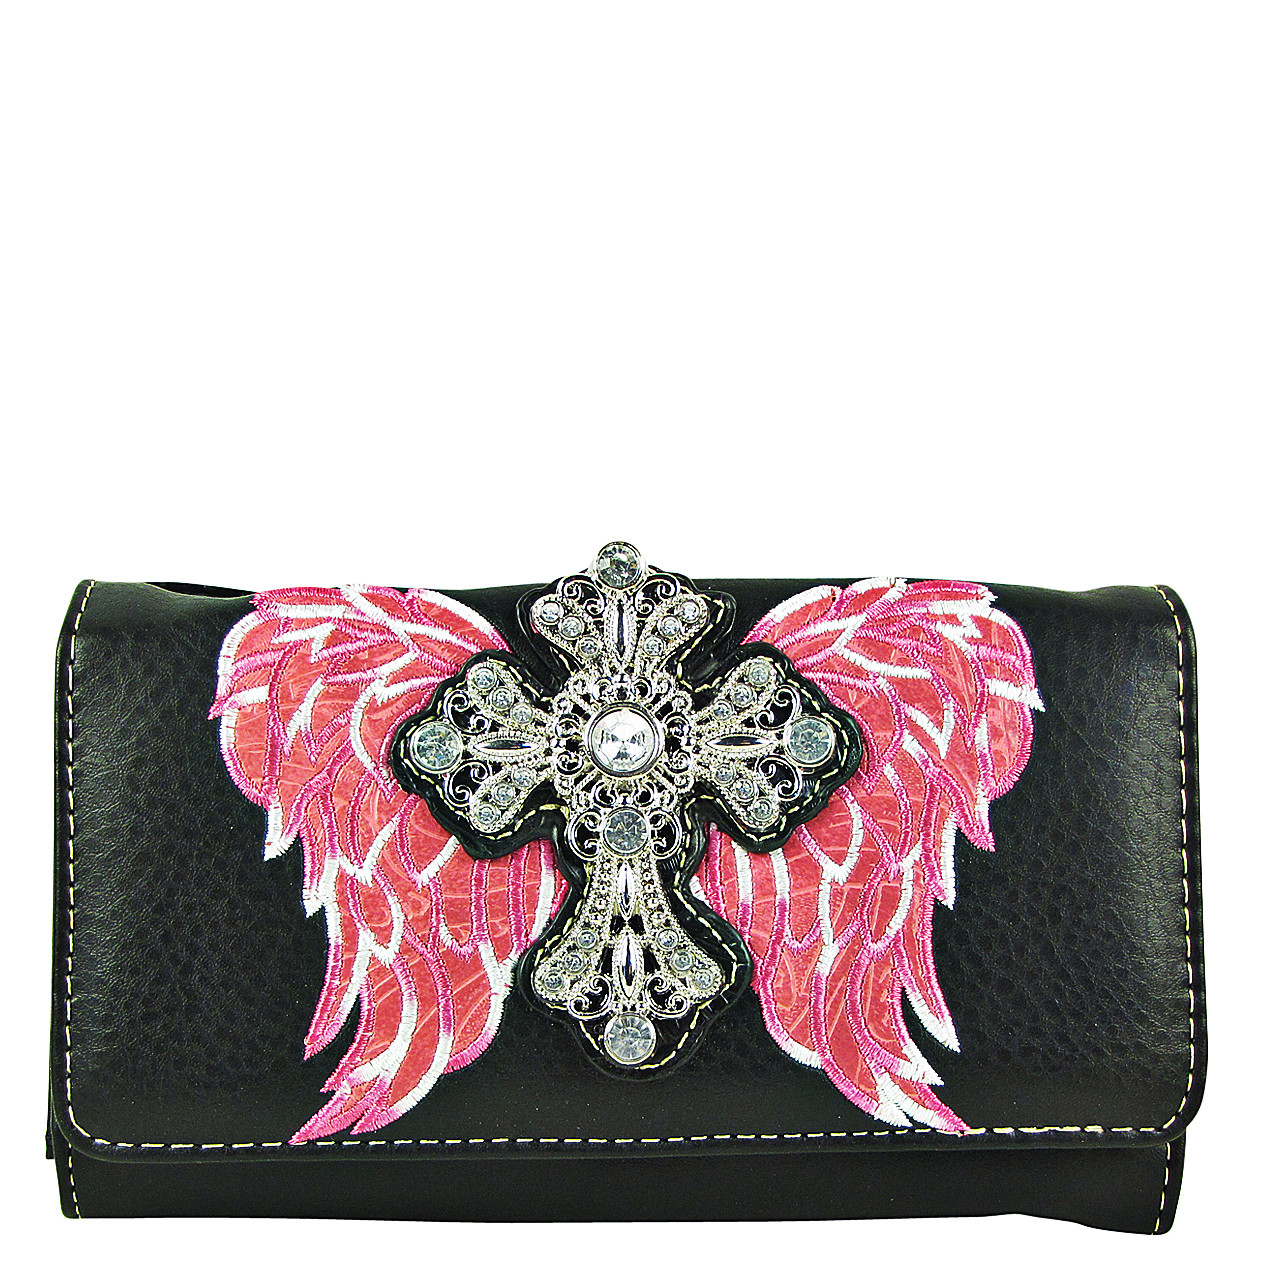 HOT PINK WINGS WITH RHINESTONE CROSS LOOK CLUTCH TRIFOLD WALLET CW1-0477HPK